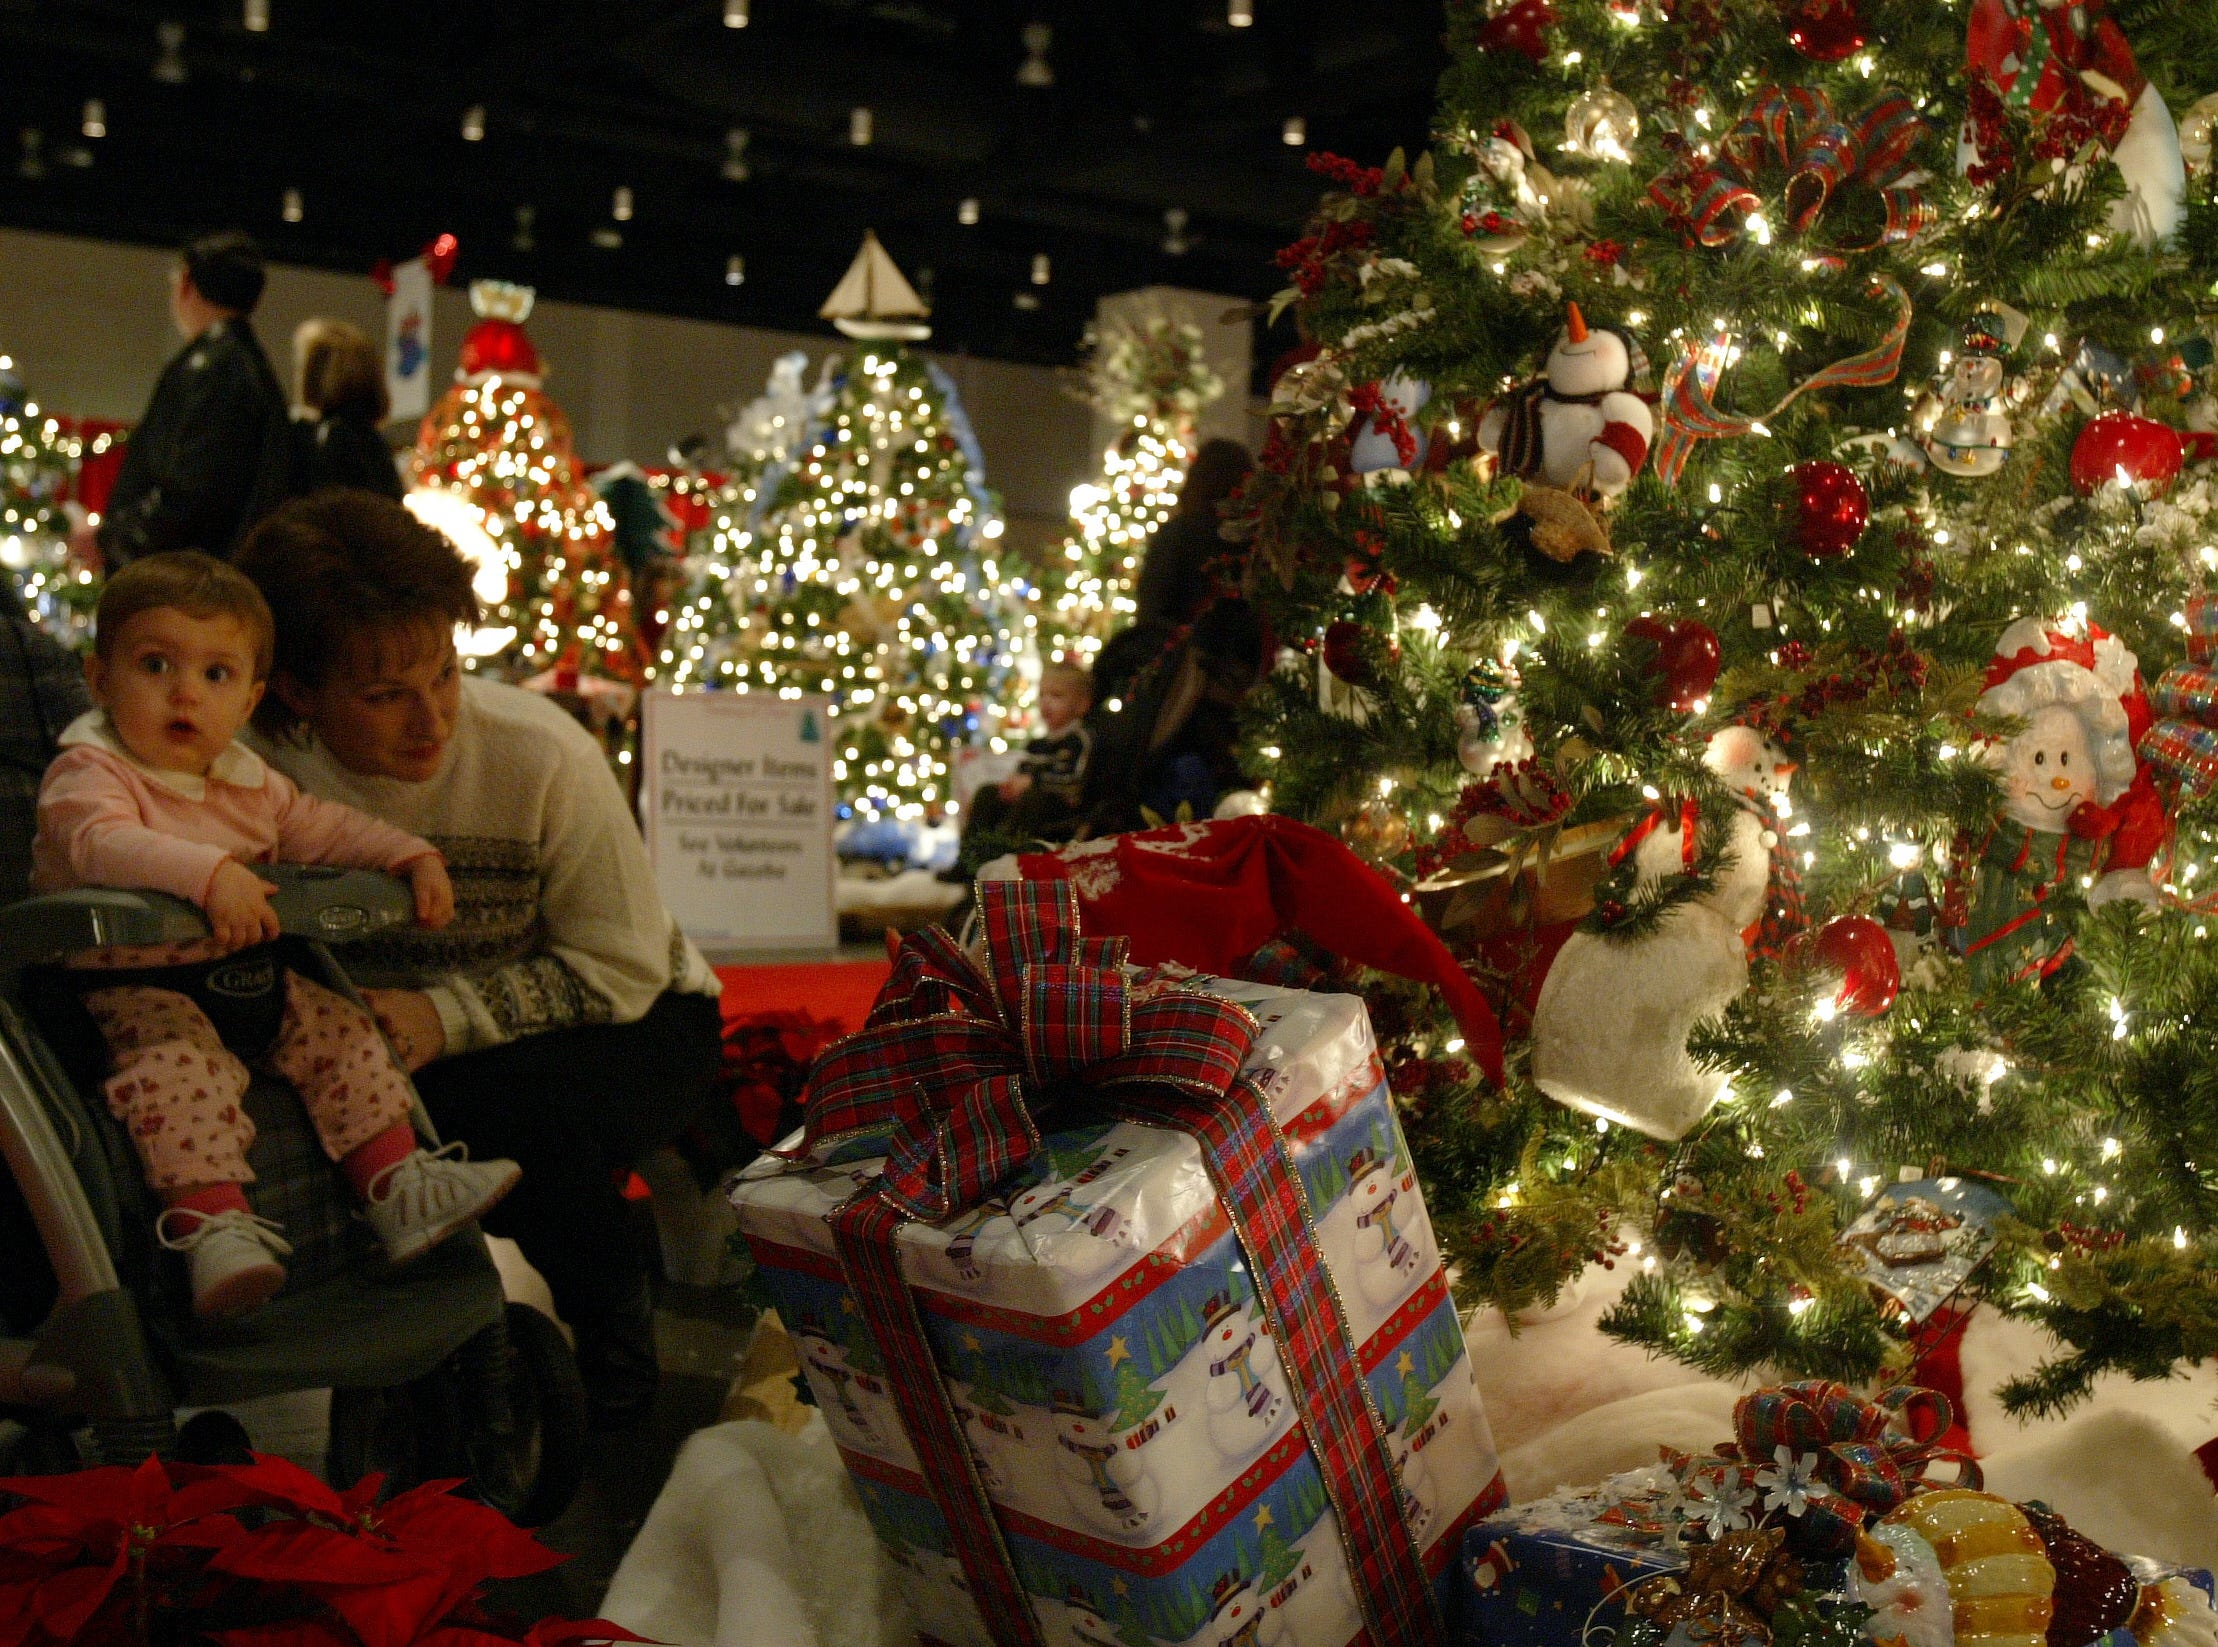 fantasyoftrees2.CC#2540.jpg---living----Nikki Stacy of Seymour and her daughter Savannah take in the bright lights of the Christmas trees during the Fantasy of Trees held at the Knoxville Convention Center.Photo by Cathy Clarke, Knoxville News Sentinel11/28/04